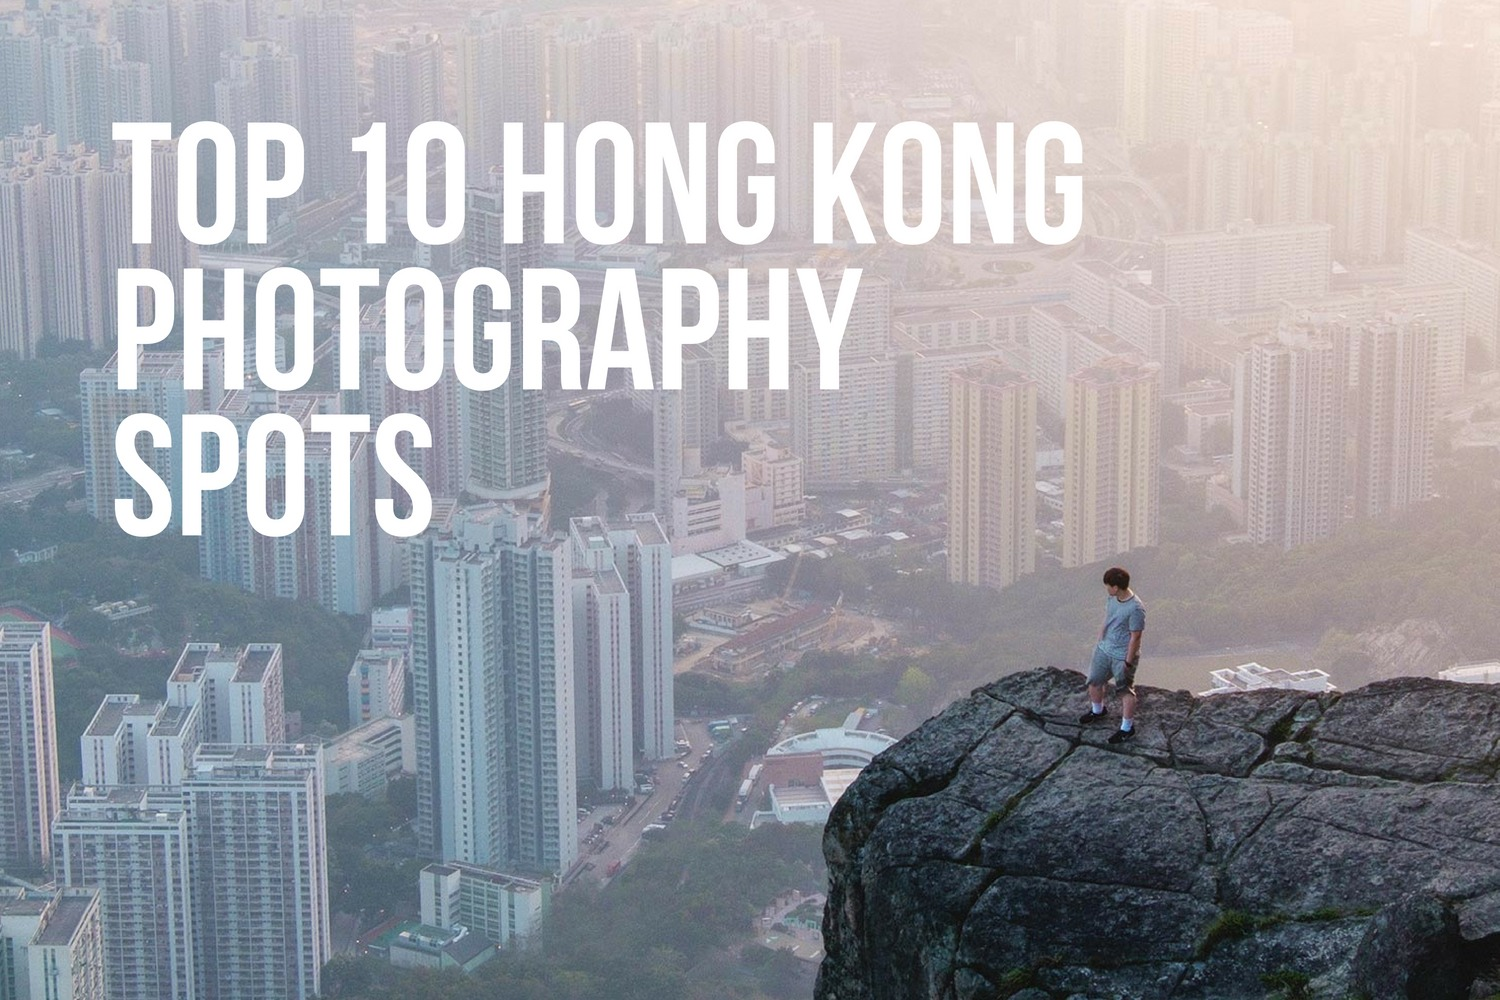 Hong Kong photography spots